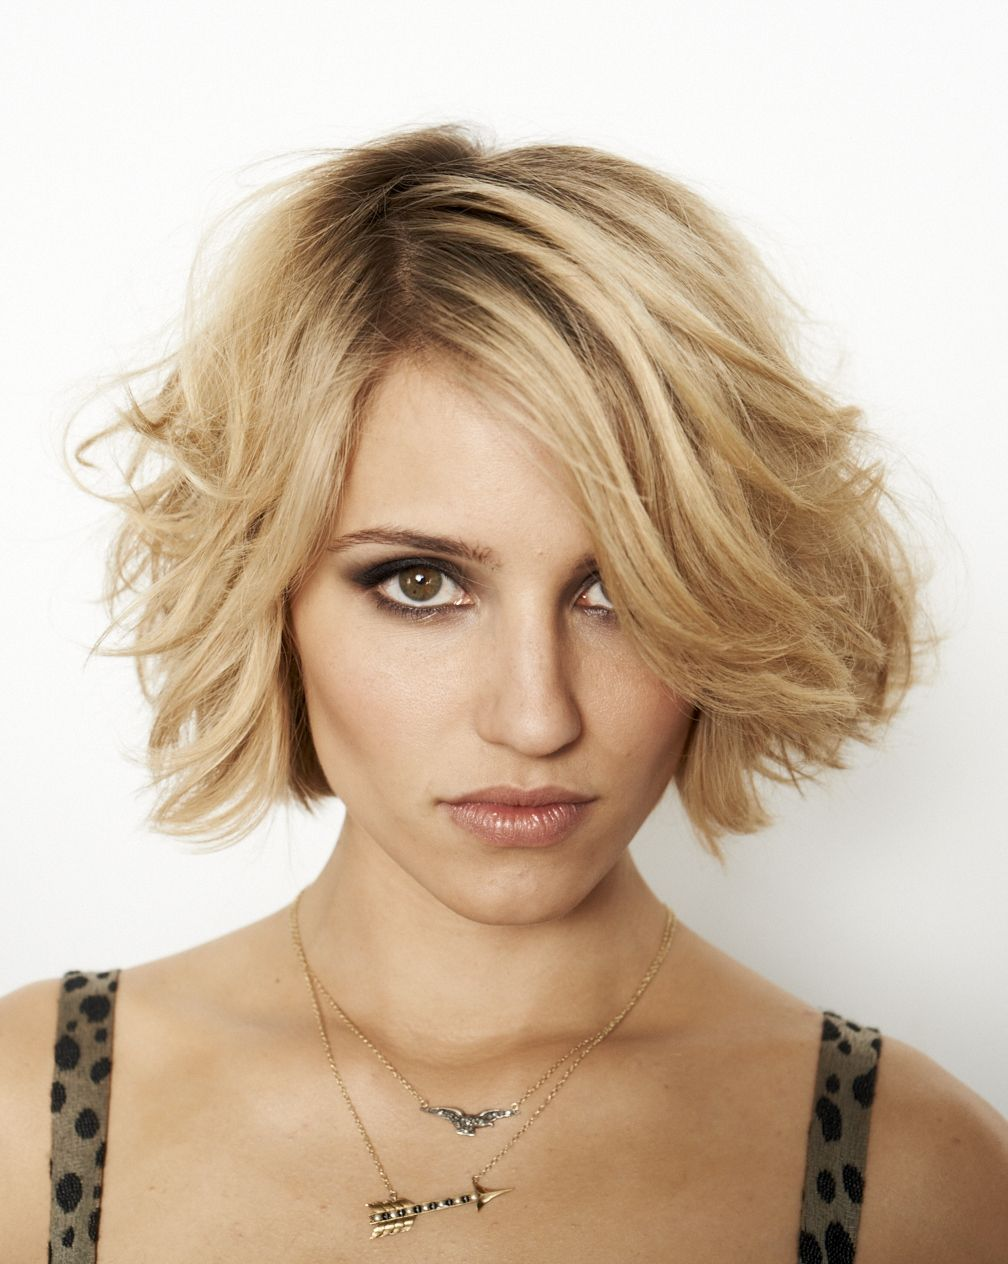 For the girls who yearn for shorter hair photo hair and beauty